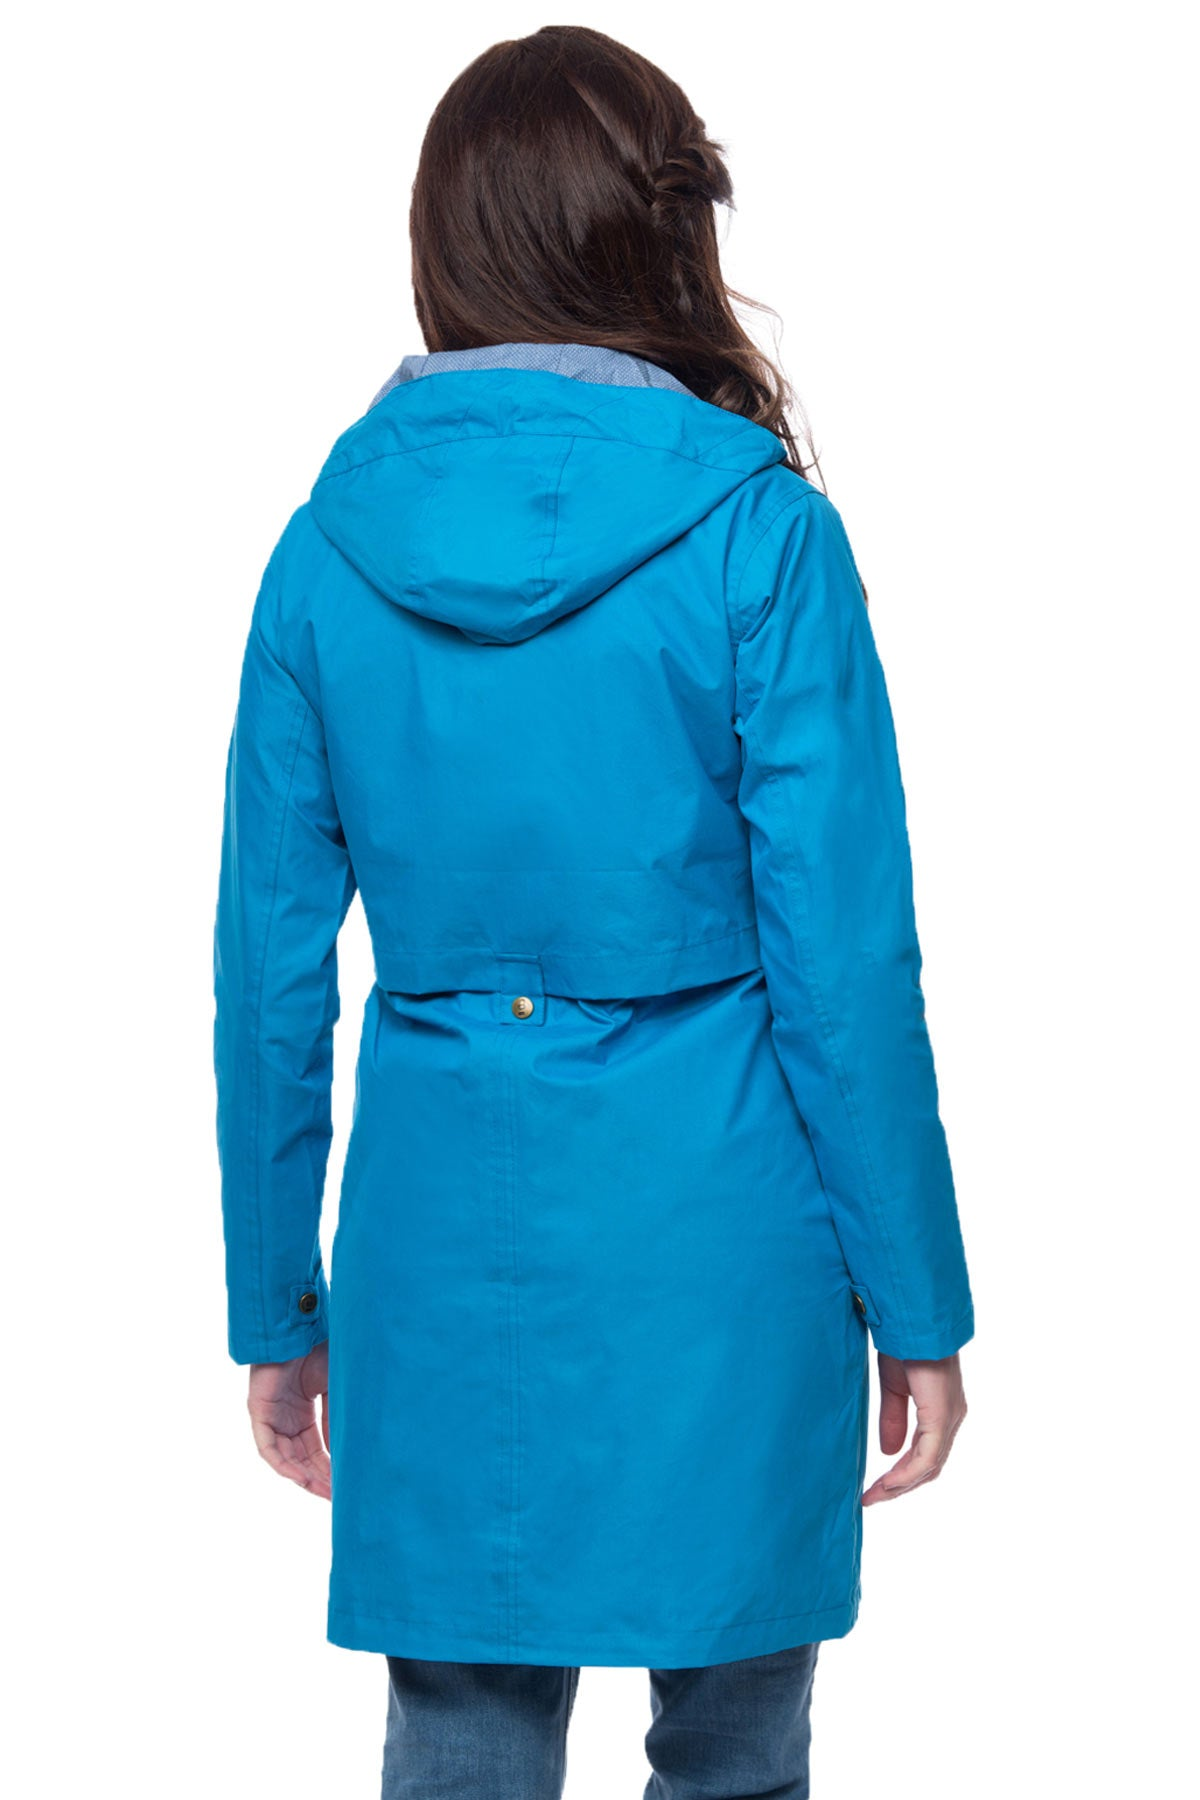 Lighthouse Rayna women's blue waterproof parka